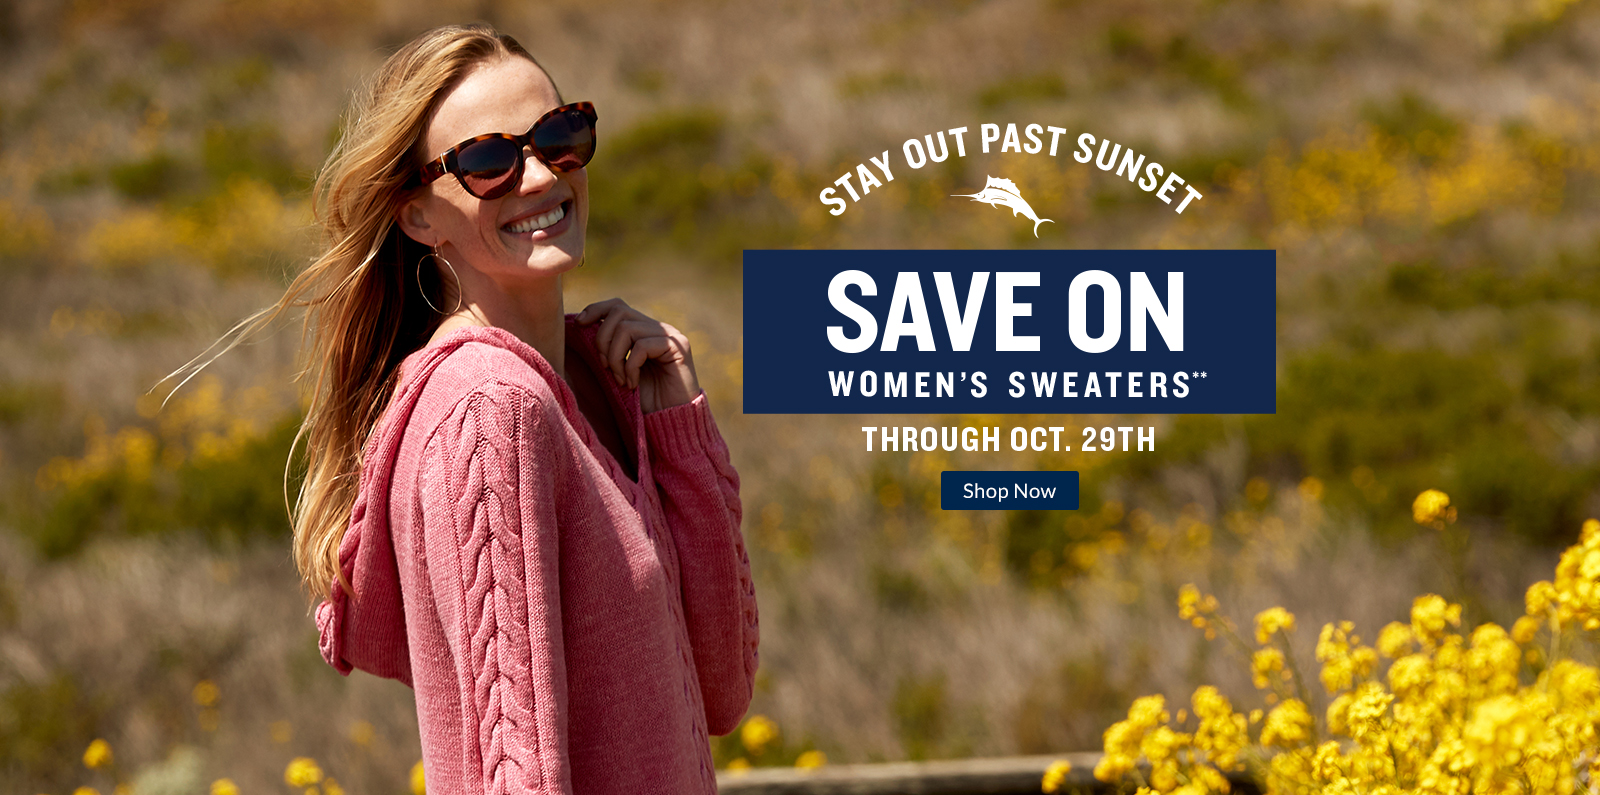 Save On Women's Sweaters